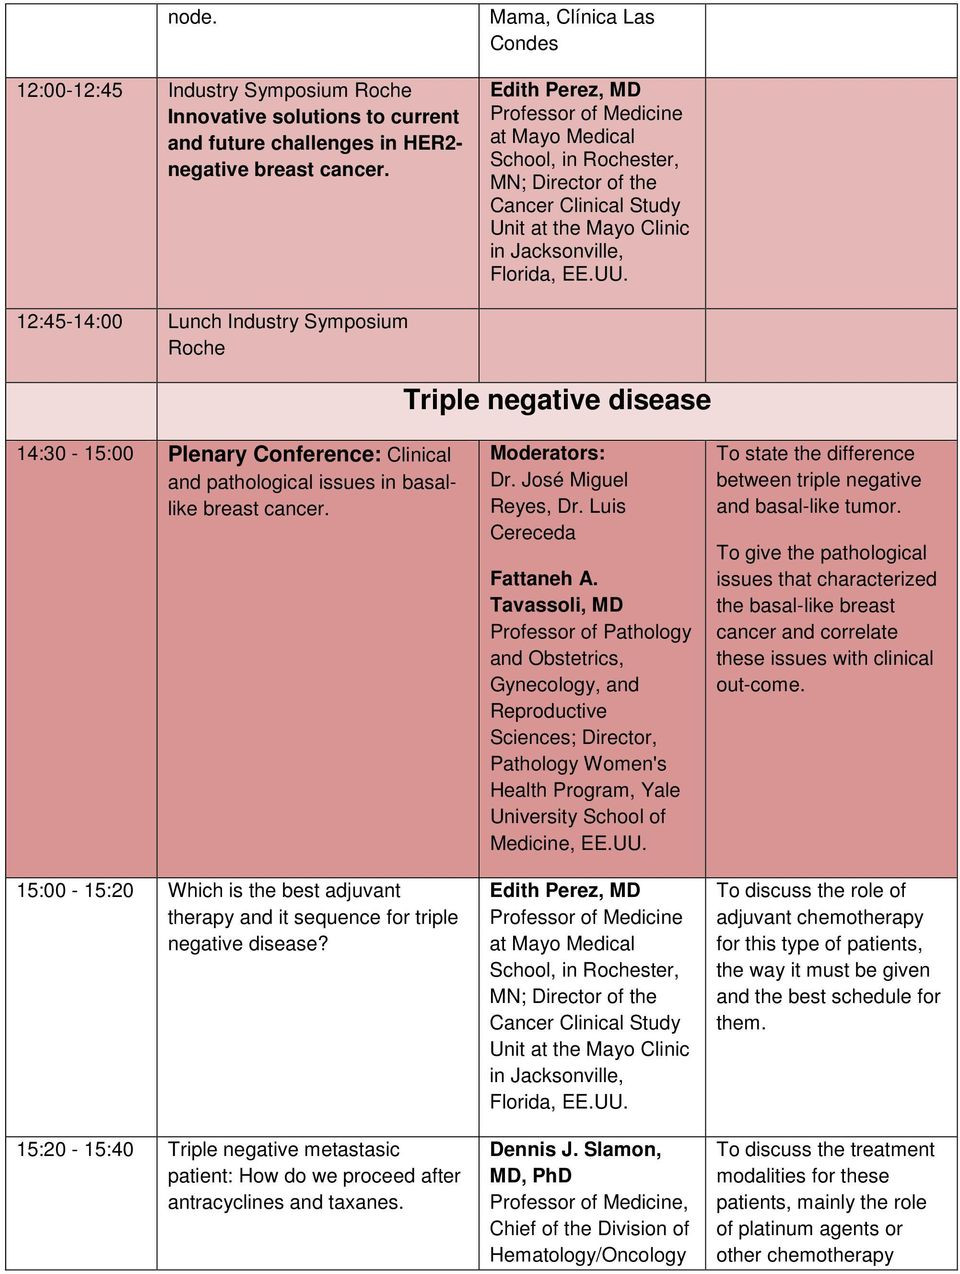 12:45-14:00 Lunch Industry Symposium Roche Triple negative disease 14:30-15:00 Plenary Conference: Clinical and pathological issues in basallike breast cancer.